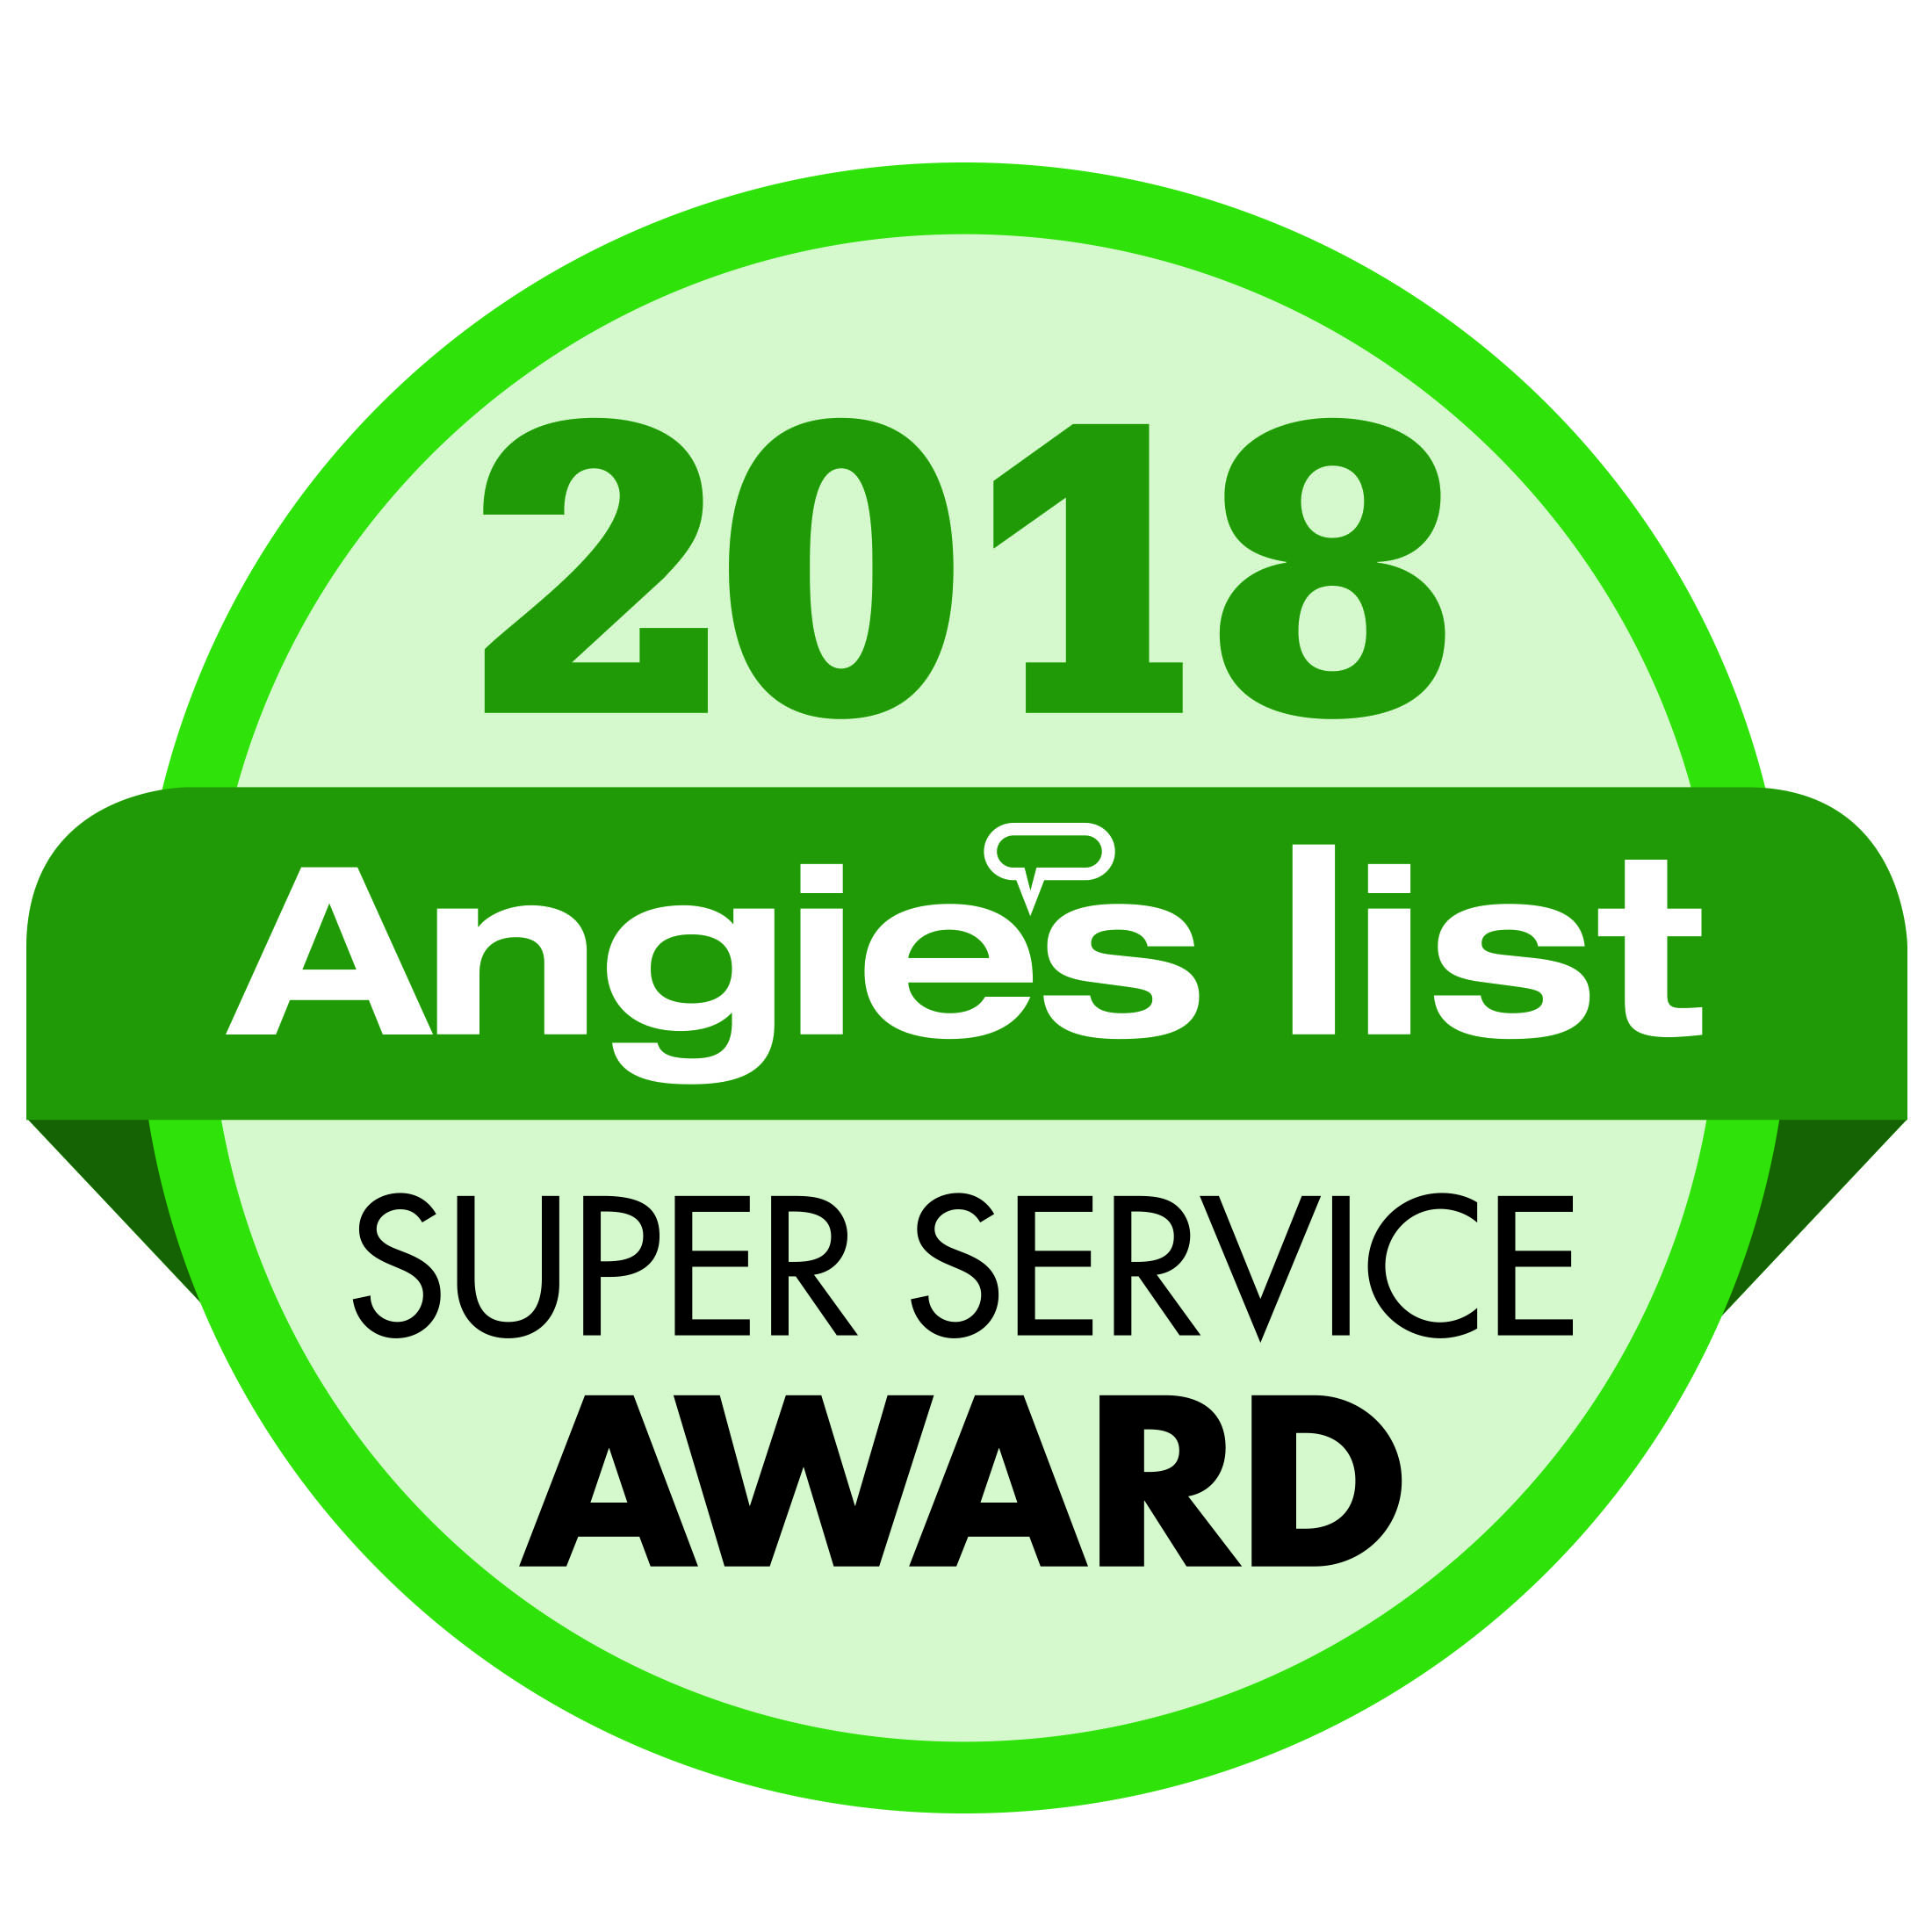 https://gasfireplaceservice.org/wp-content/uploads/2019/05/AngiesList_SSA_2018_HighRes.jpg